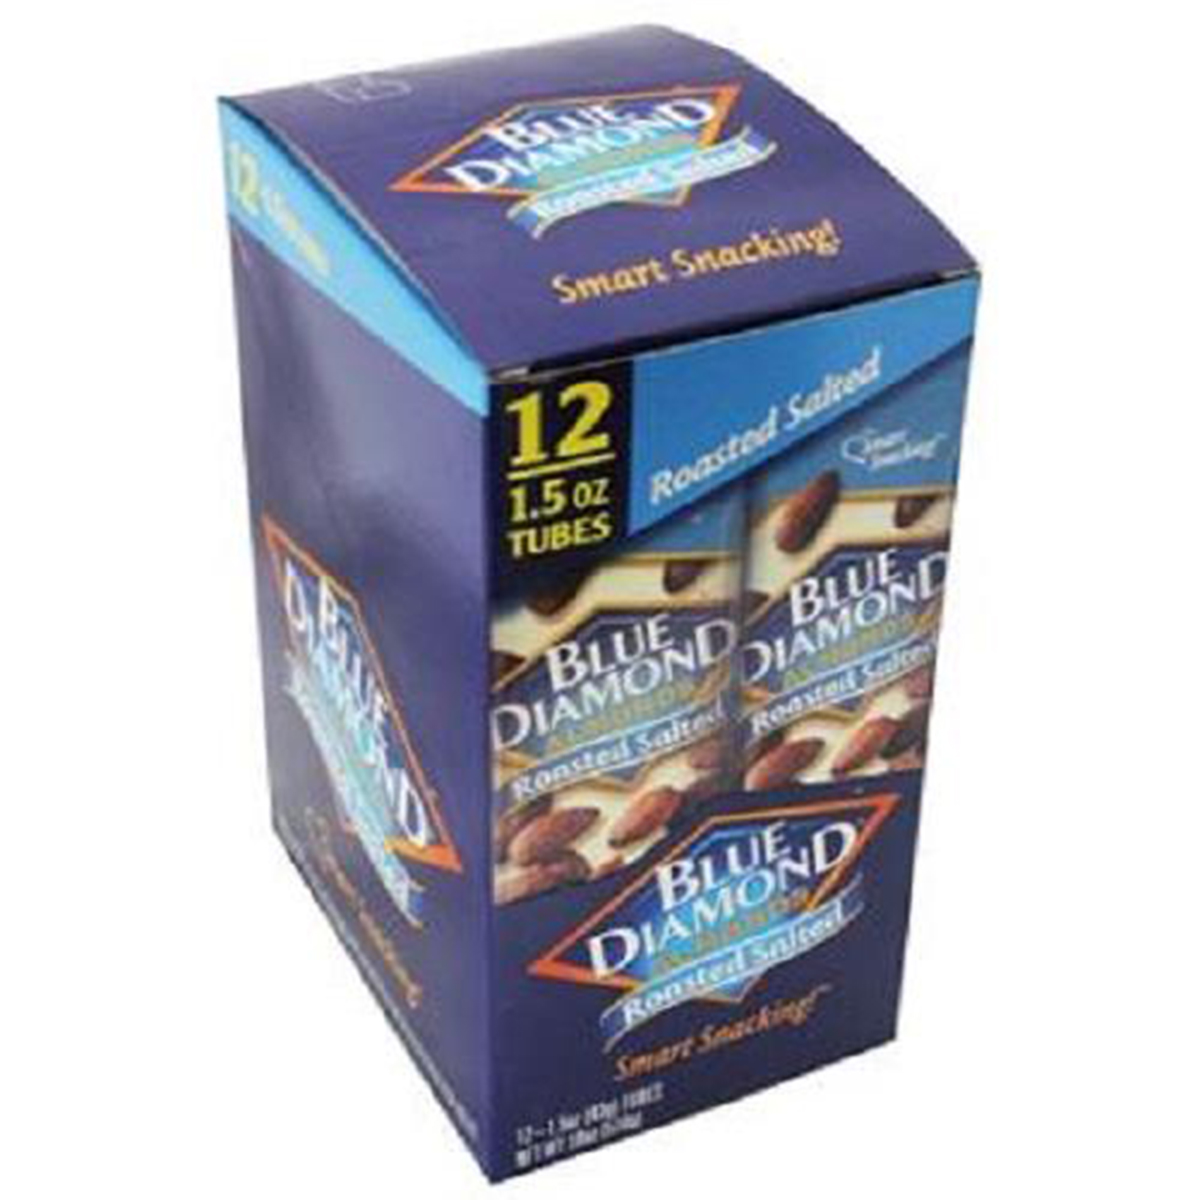 Product Of Blue Diamond, Almonds Roasted Salted Tube, Count 12 (1.5 oz) - Nut & Dry Fruit / Grab Varieties & Flavors